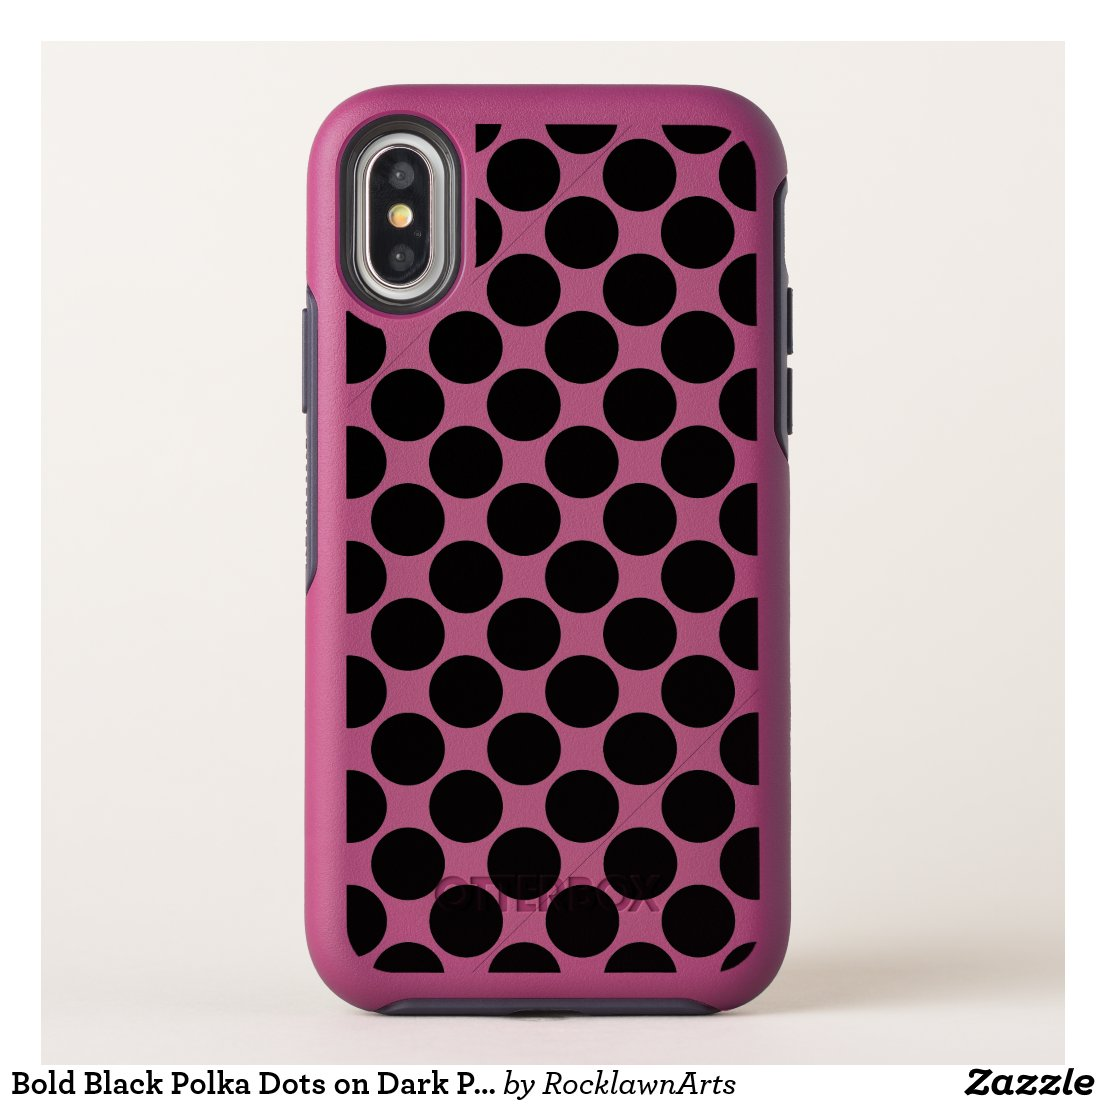 Bold Black Polka Dots on Dark Pink OtterBox Symmetry iPhone X Case